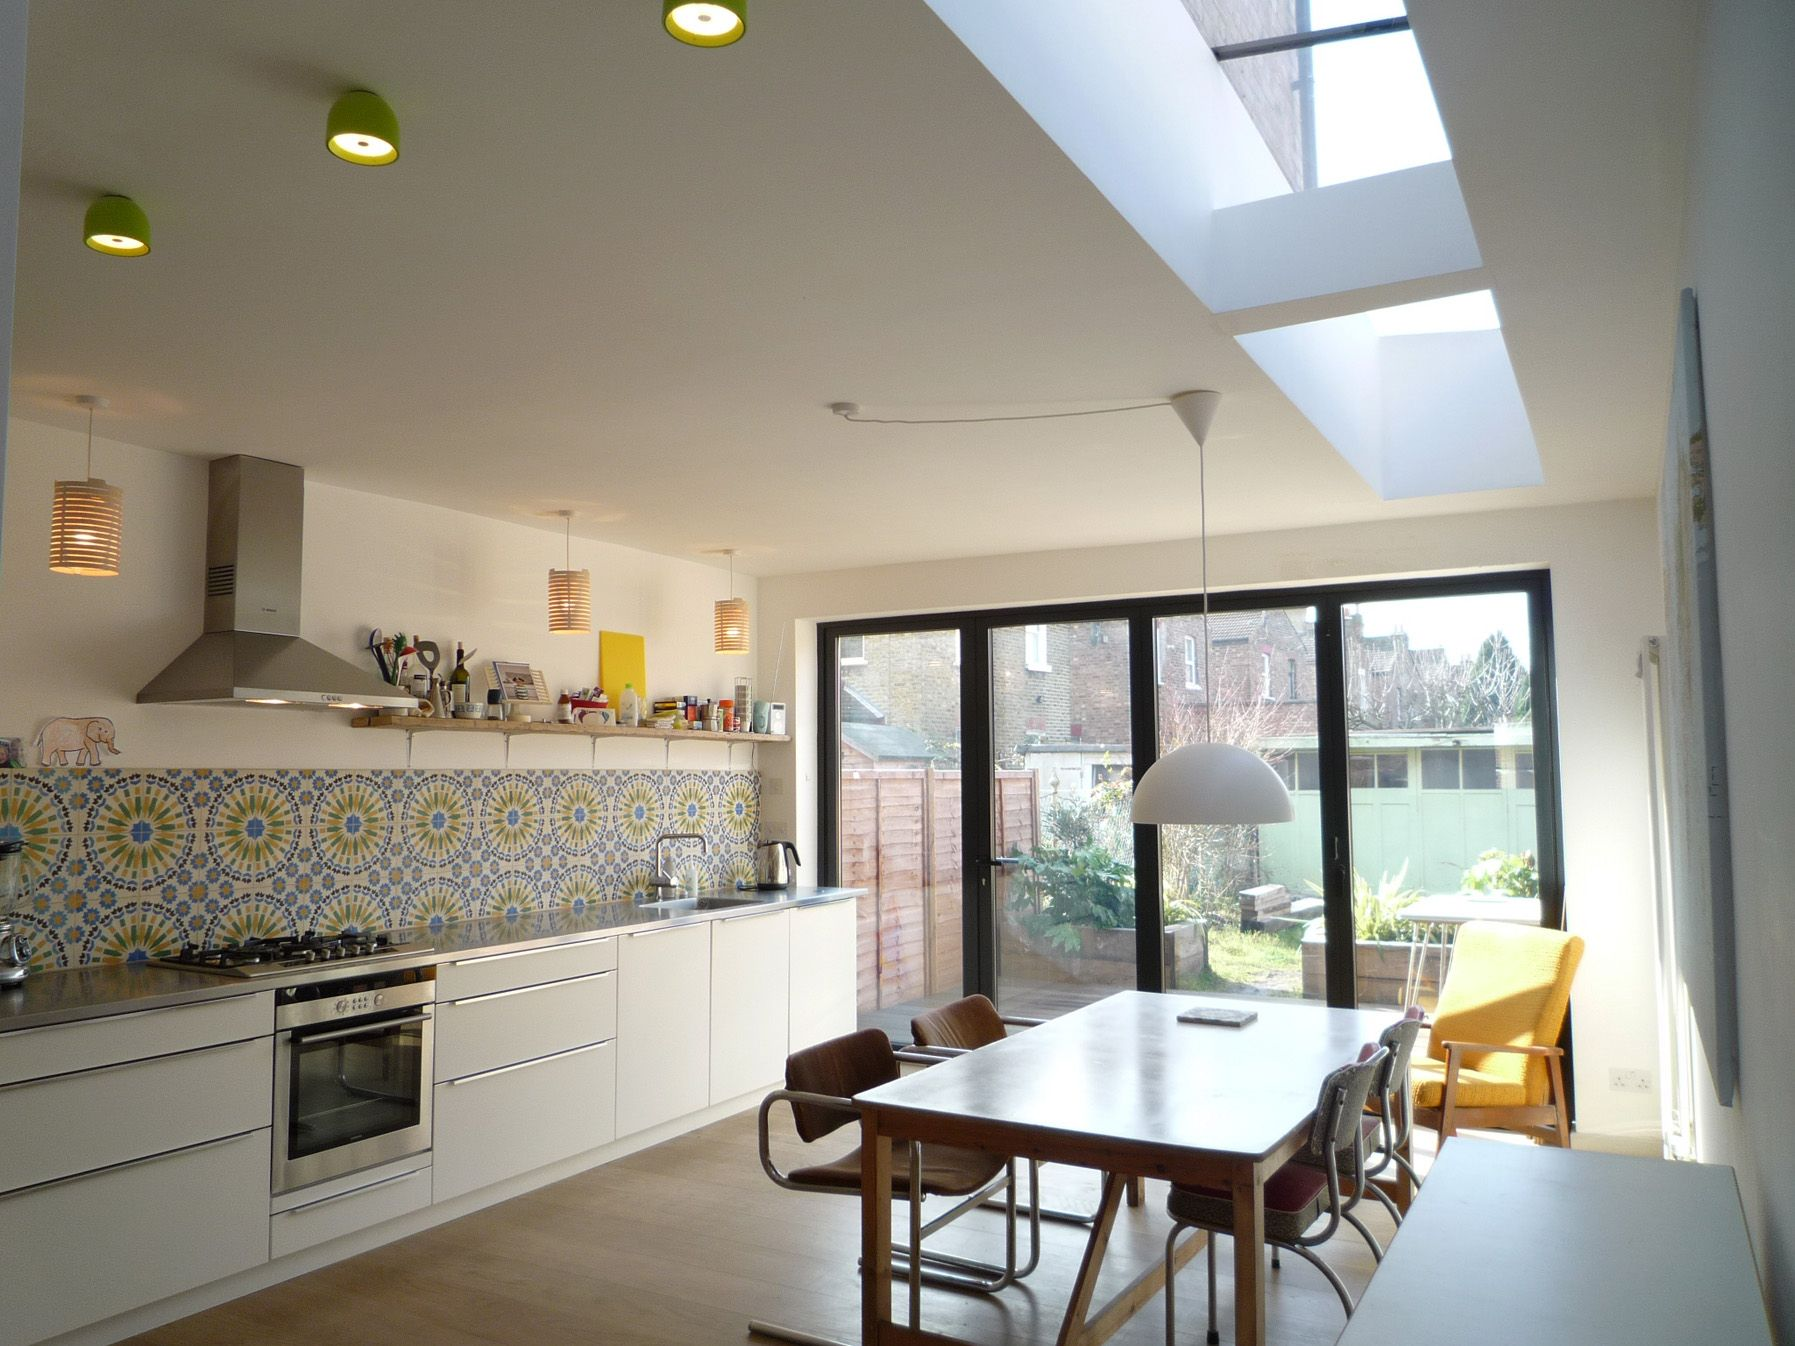 Terraced House Kitchen Extension Google Search Extension Pinterest Google Images